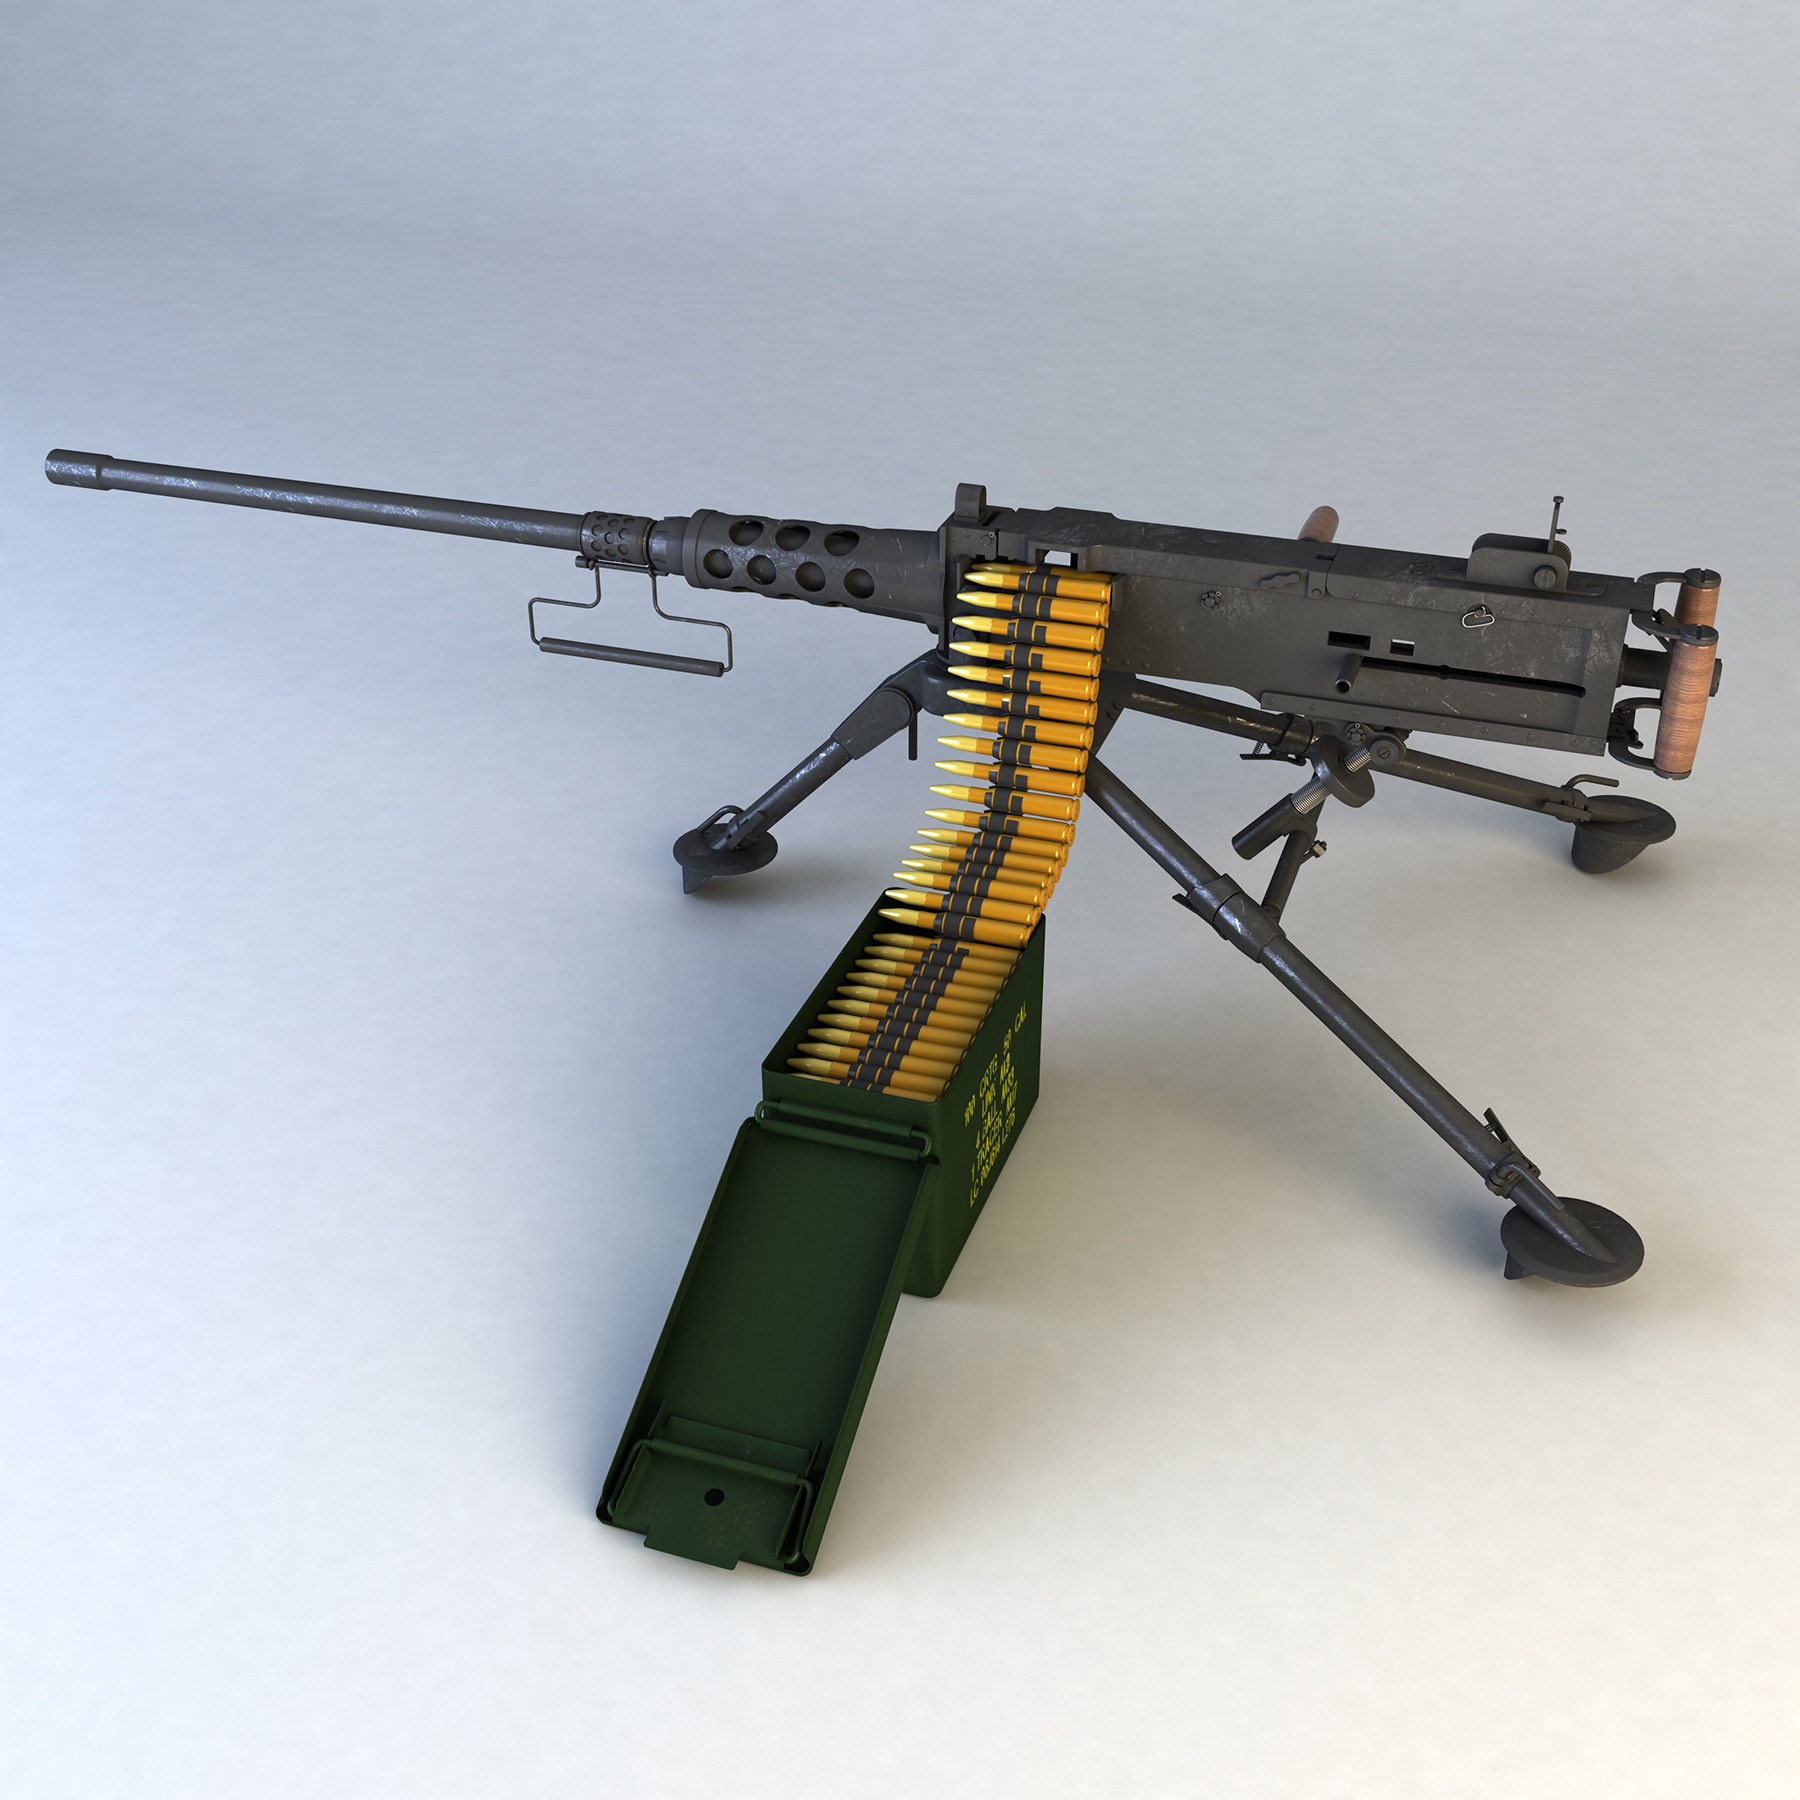 M2 Browning High Quality Background on Wallpapers Vista